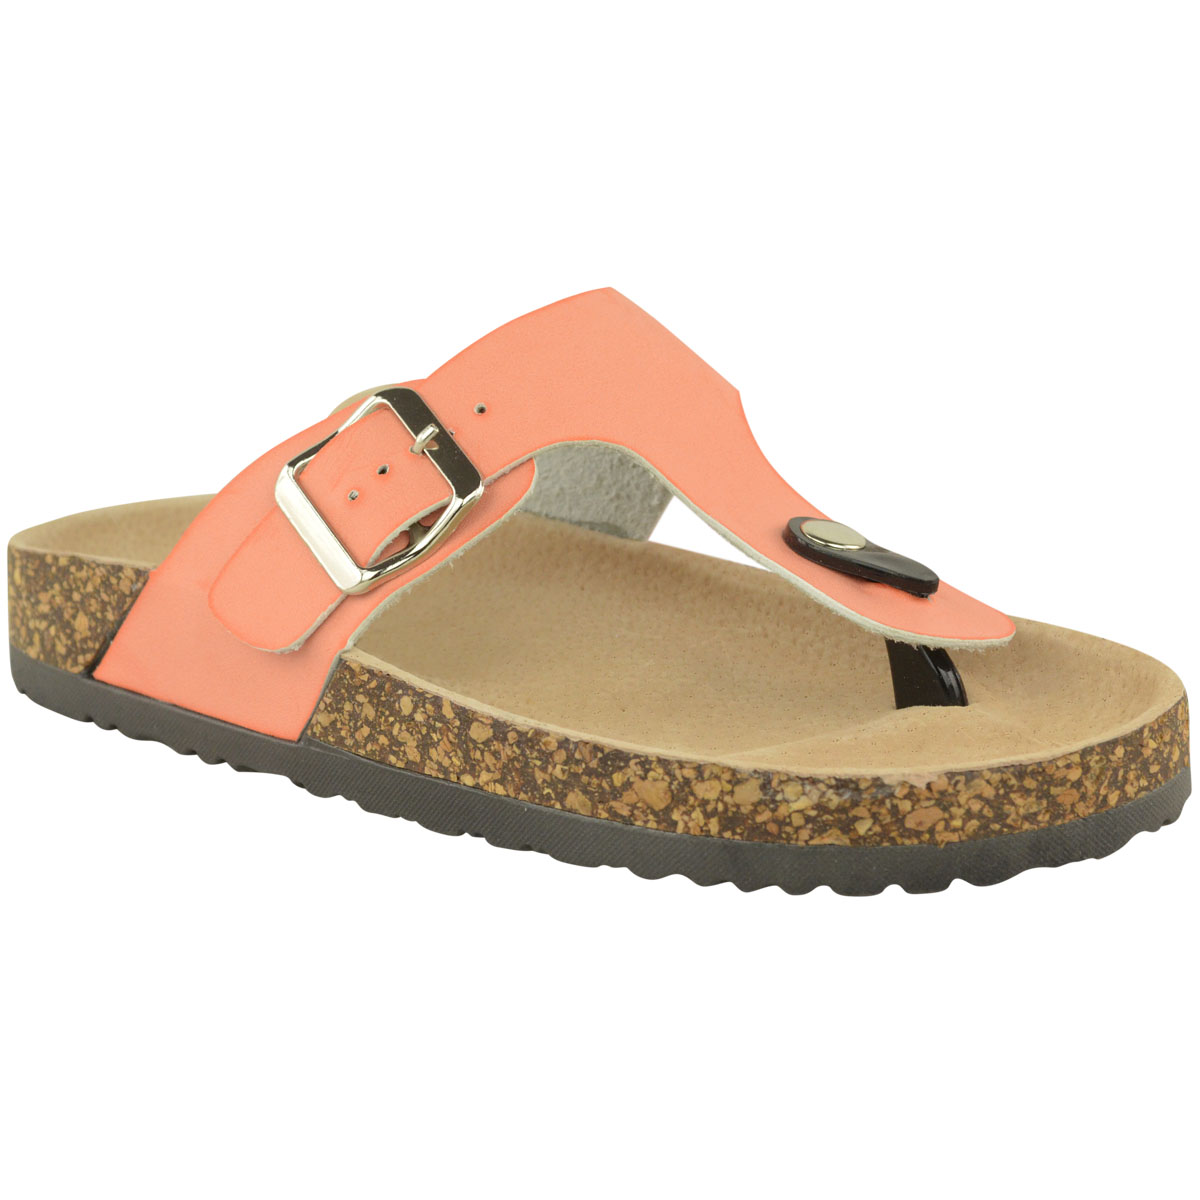 Shop for the best women's flip flops online with DSW's huge selection of cute designer and name brand flip flop sandals below.